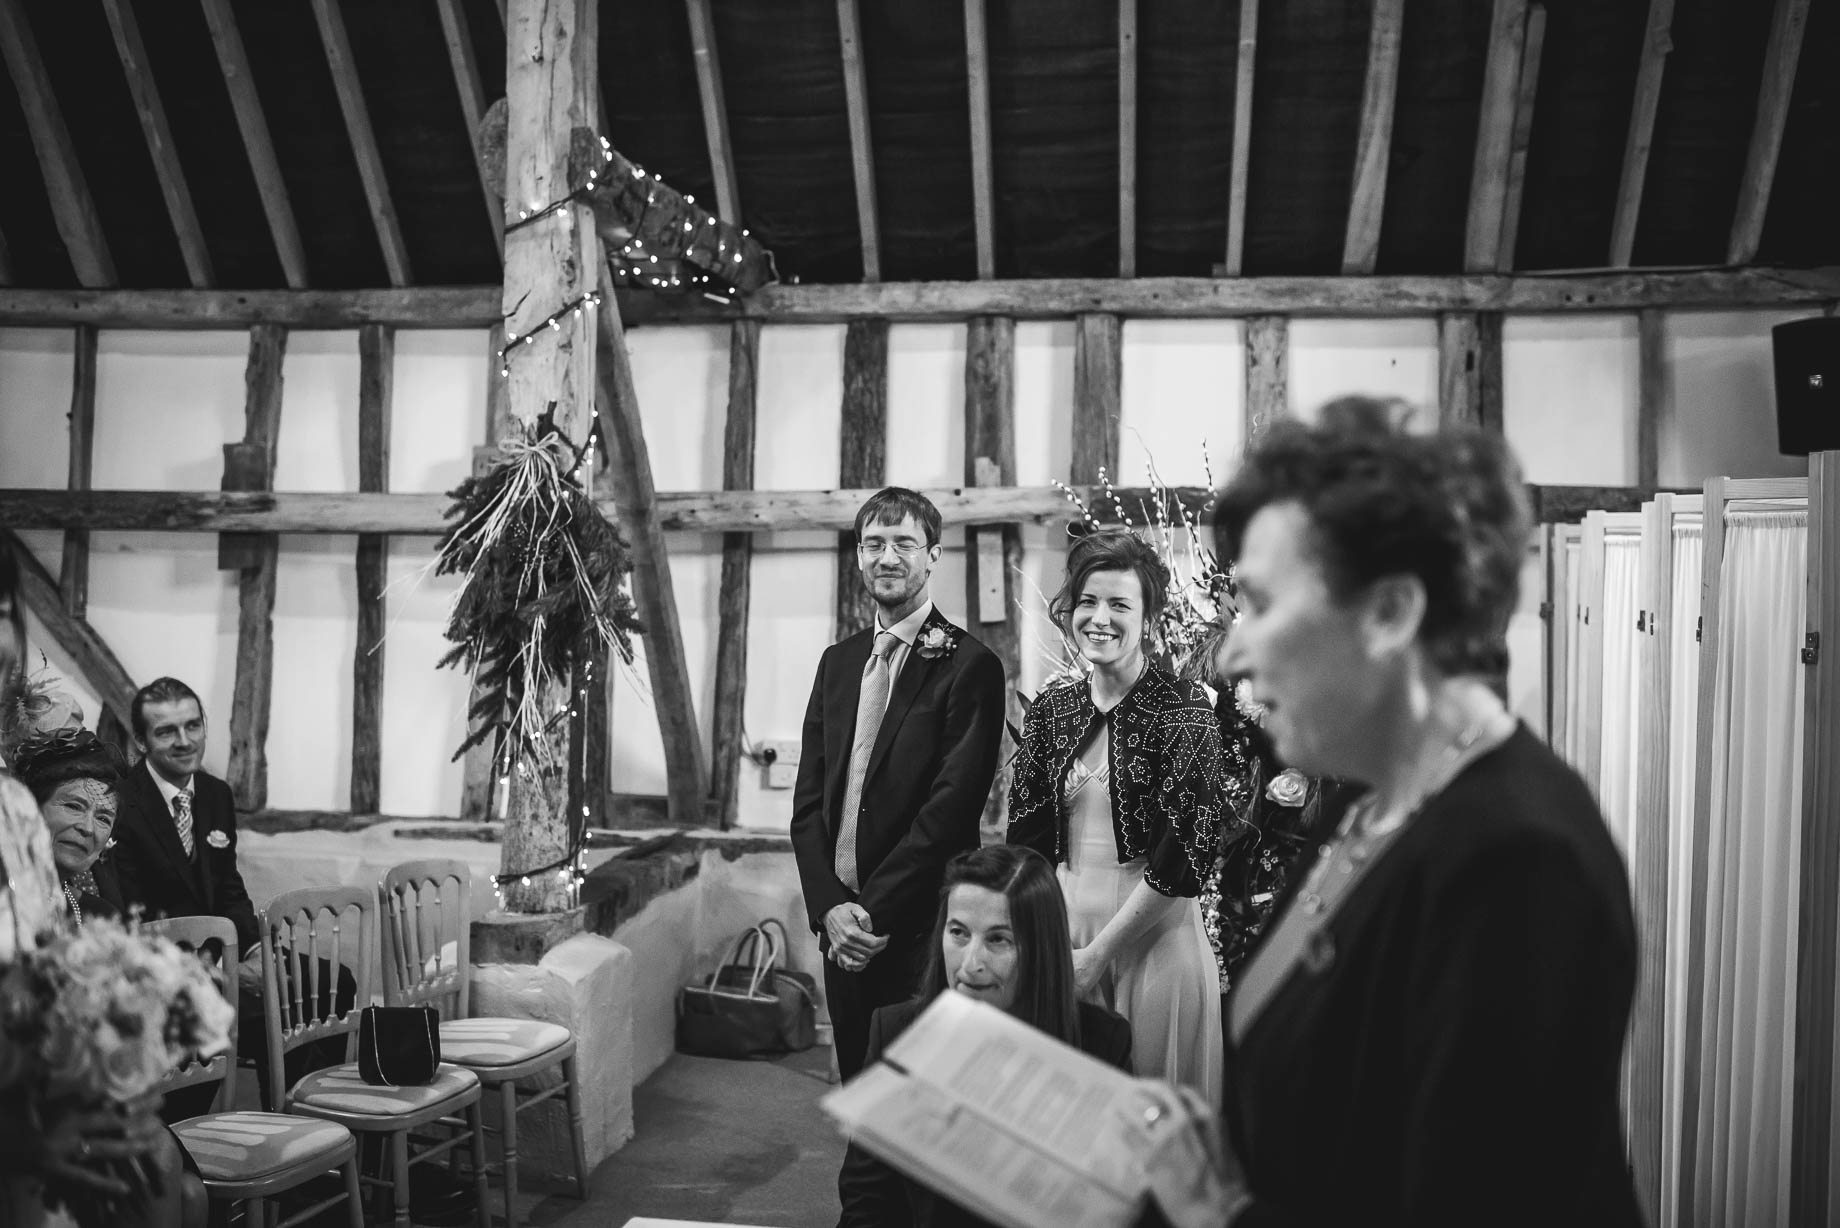 Clock Barn Wedding Photography - Eva and Ollie (47 of 170)